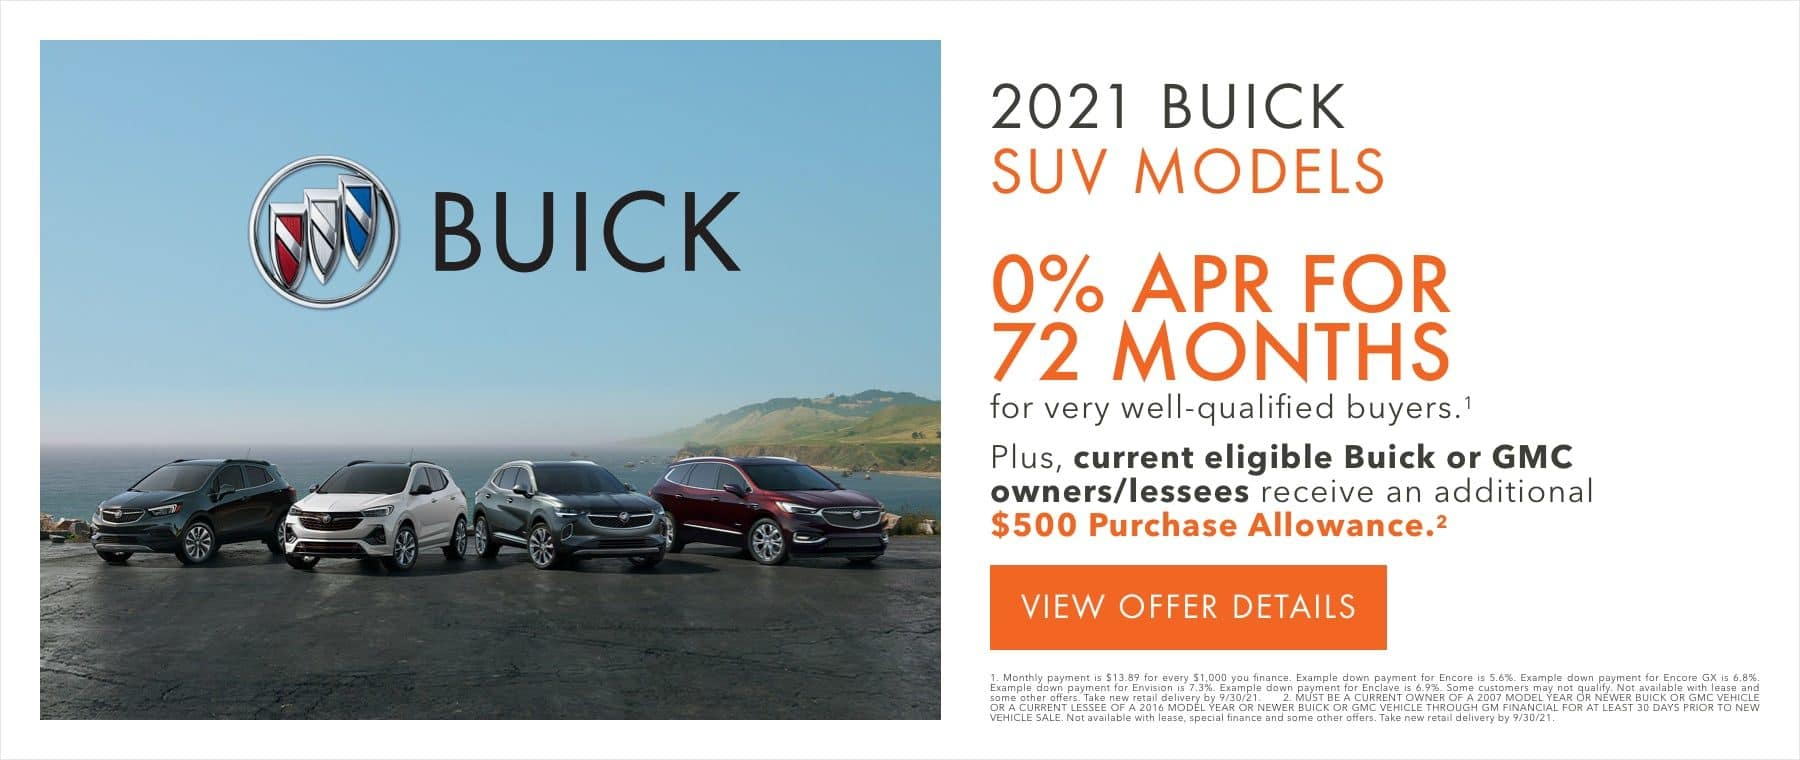 0% APR for 72 months for very well-qualified buyers.1 Plus, current eligible Buick or GMC owners/lessees receive an additional $500 Purchase Allowance.2